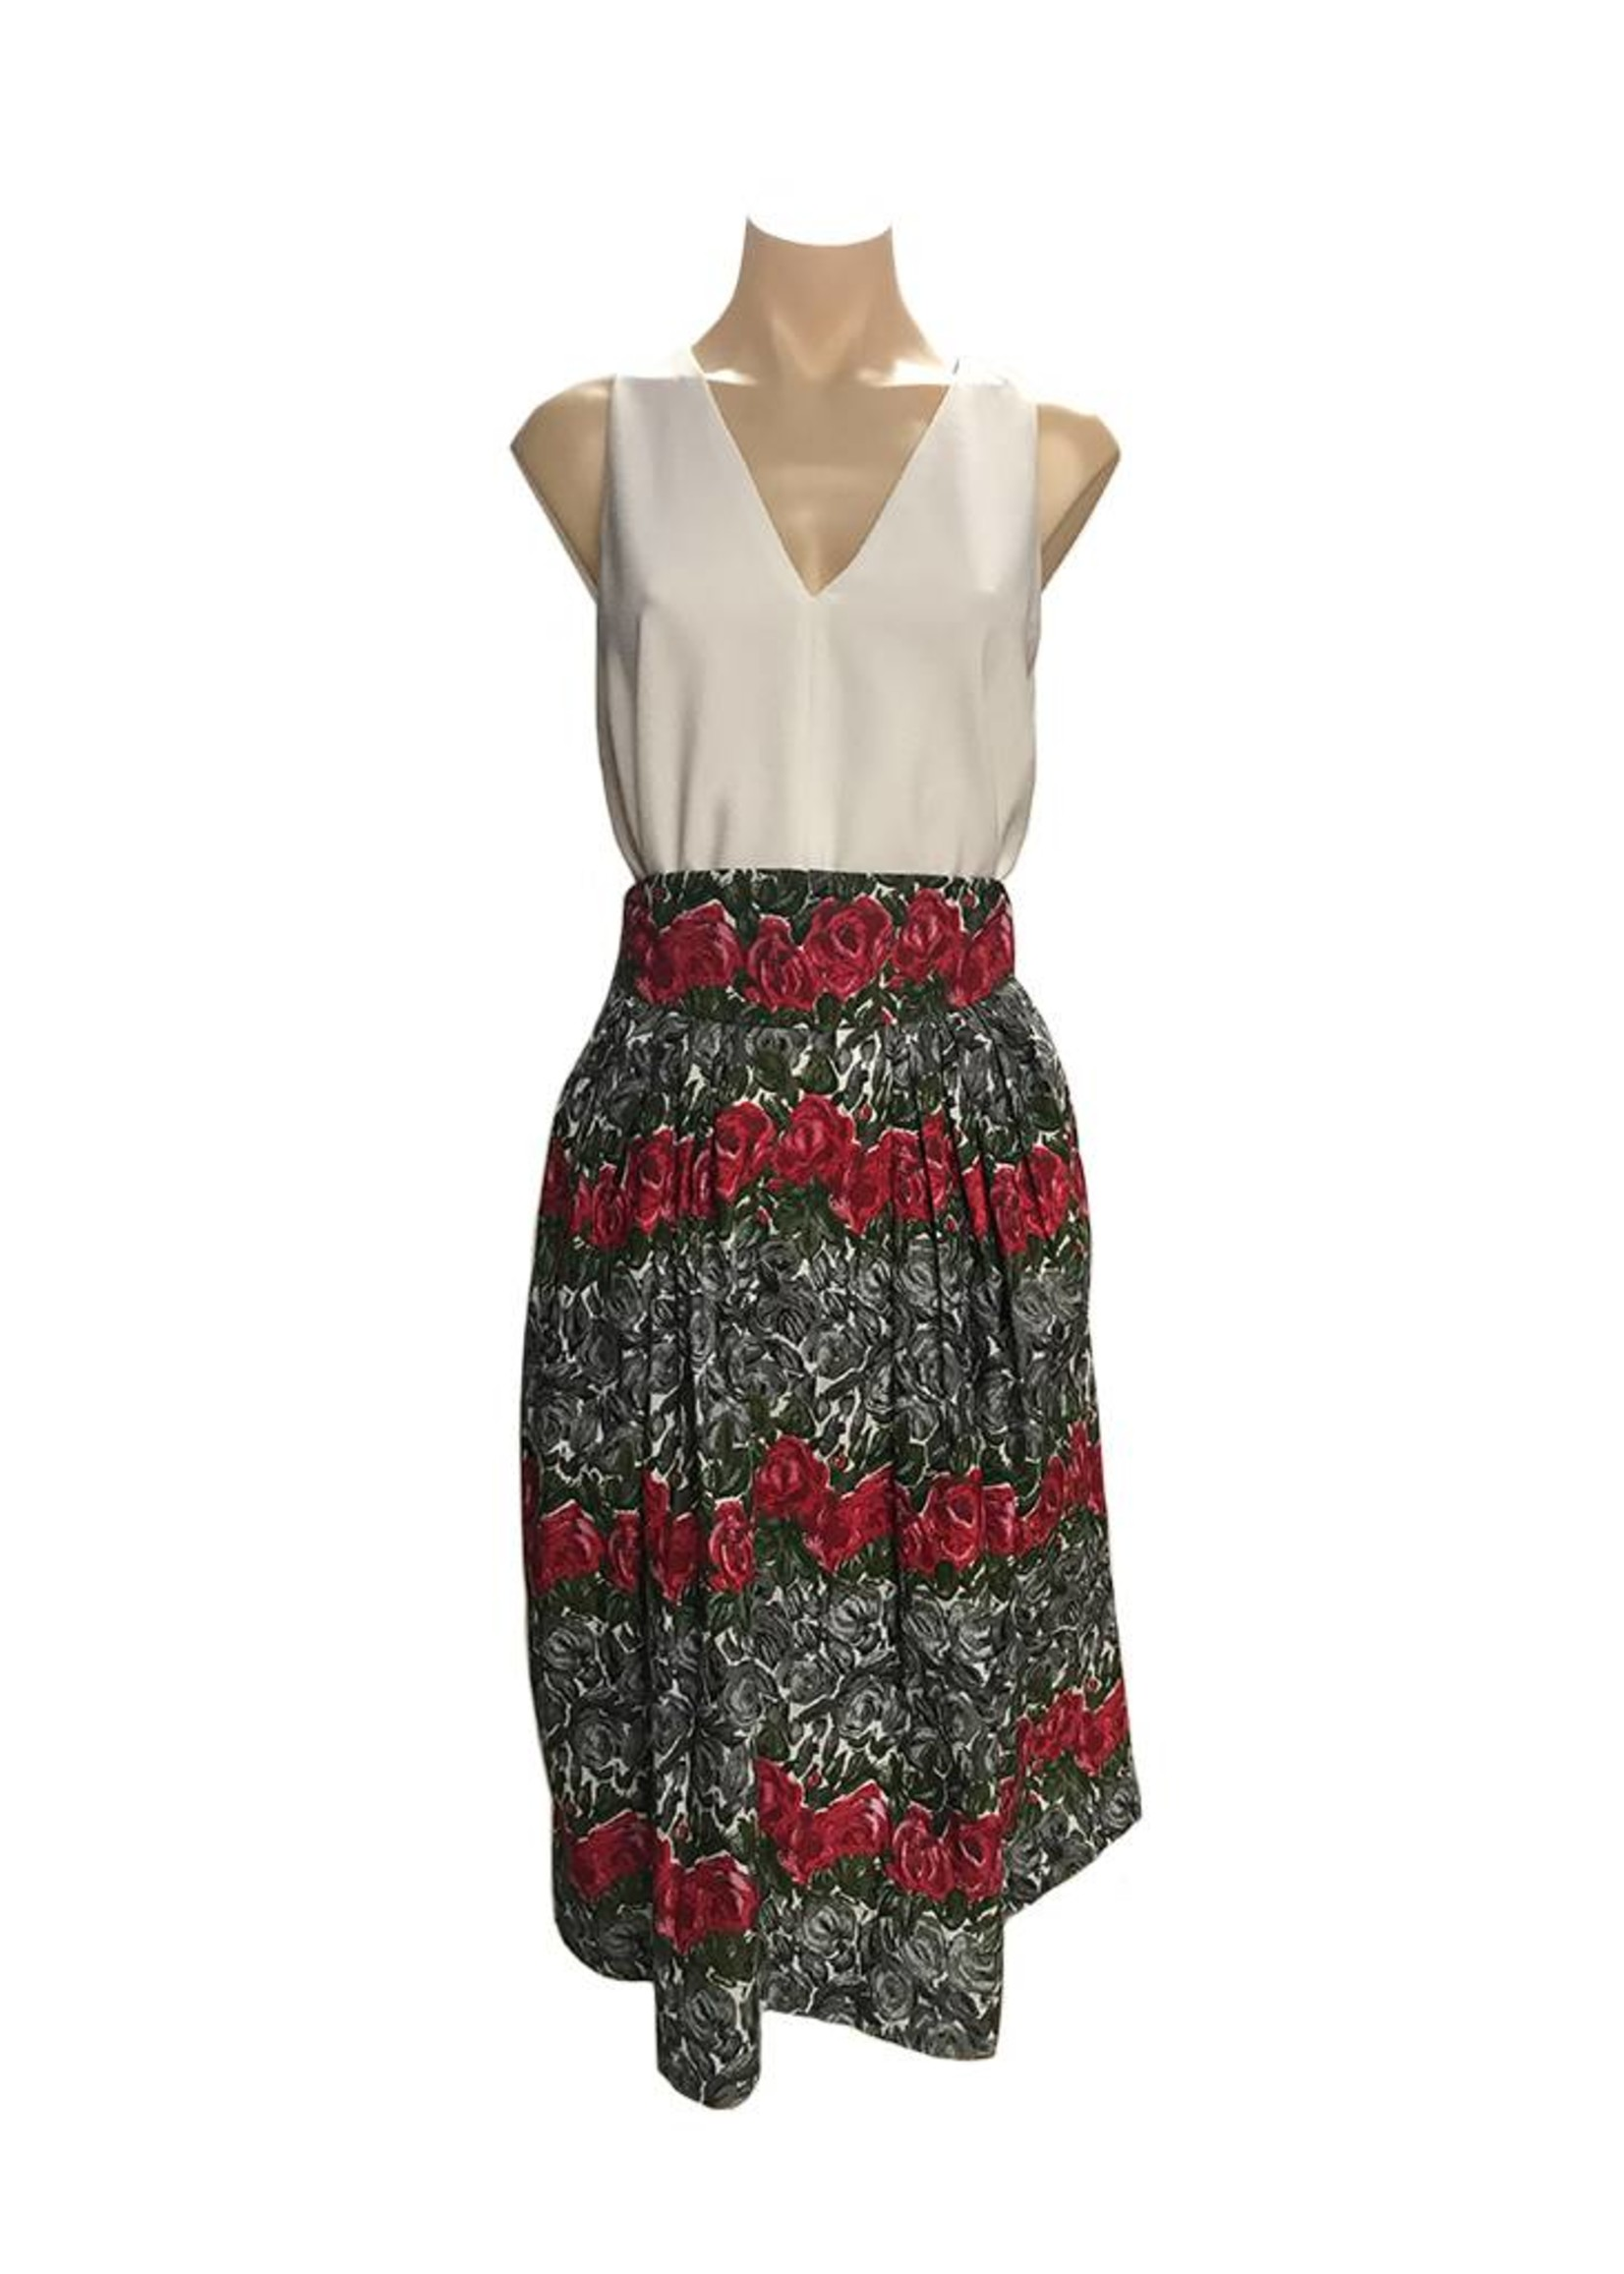 Emily & Fin Florence Skirt in Bed Of Roses